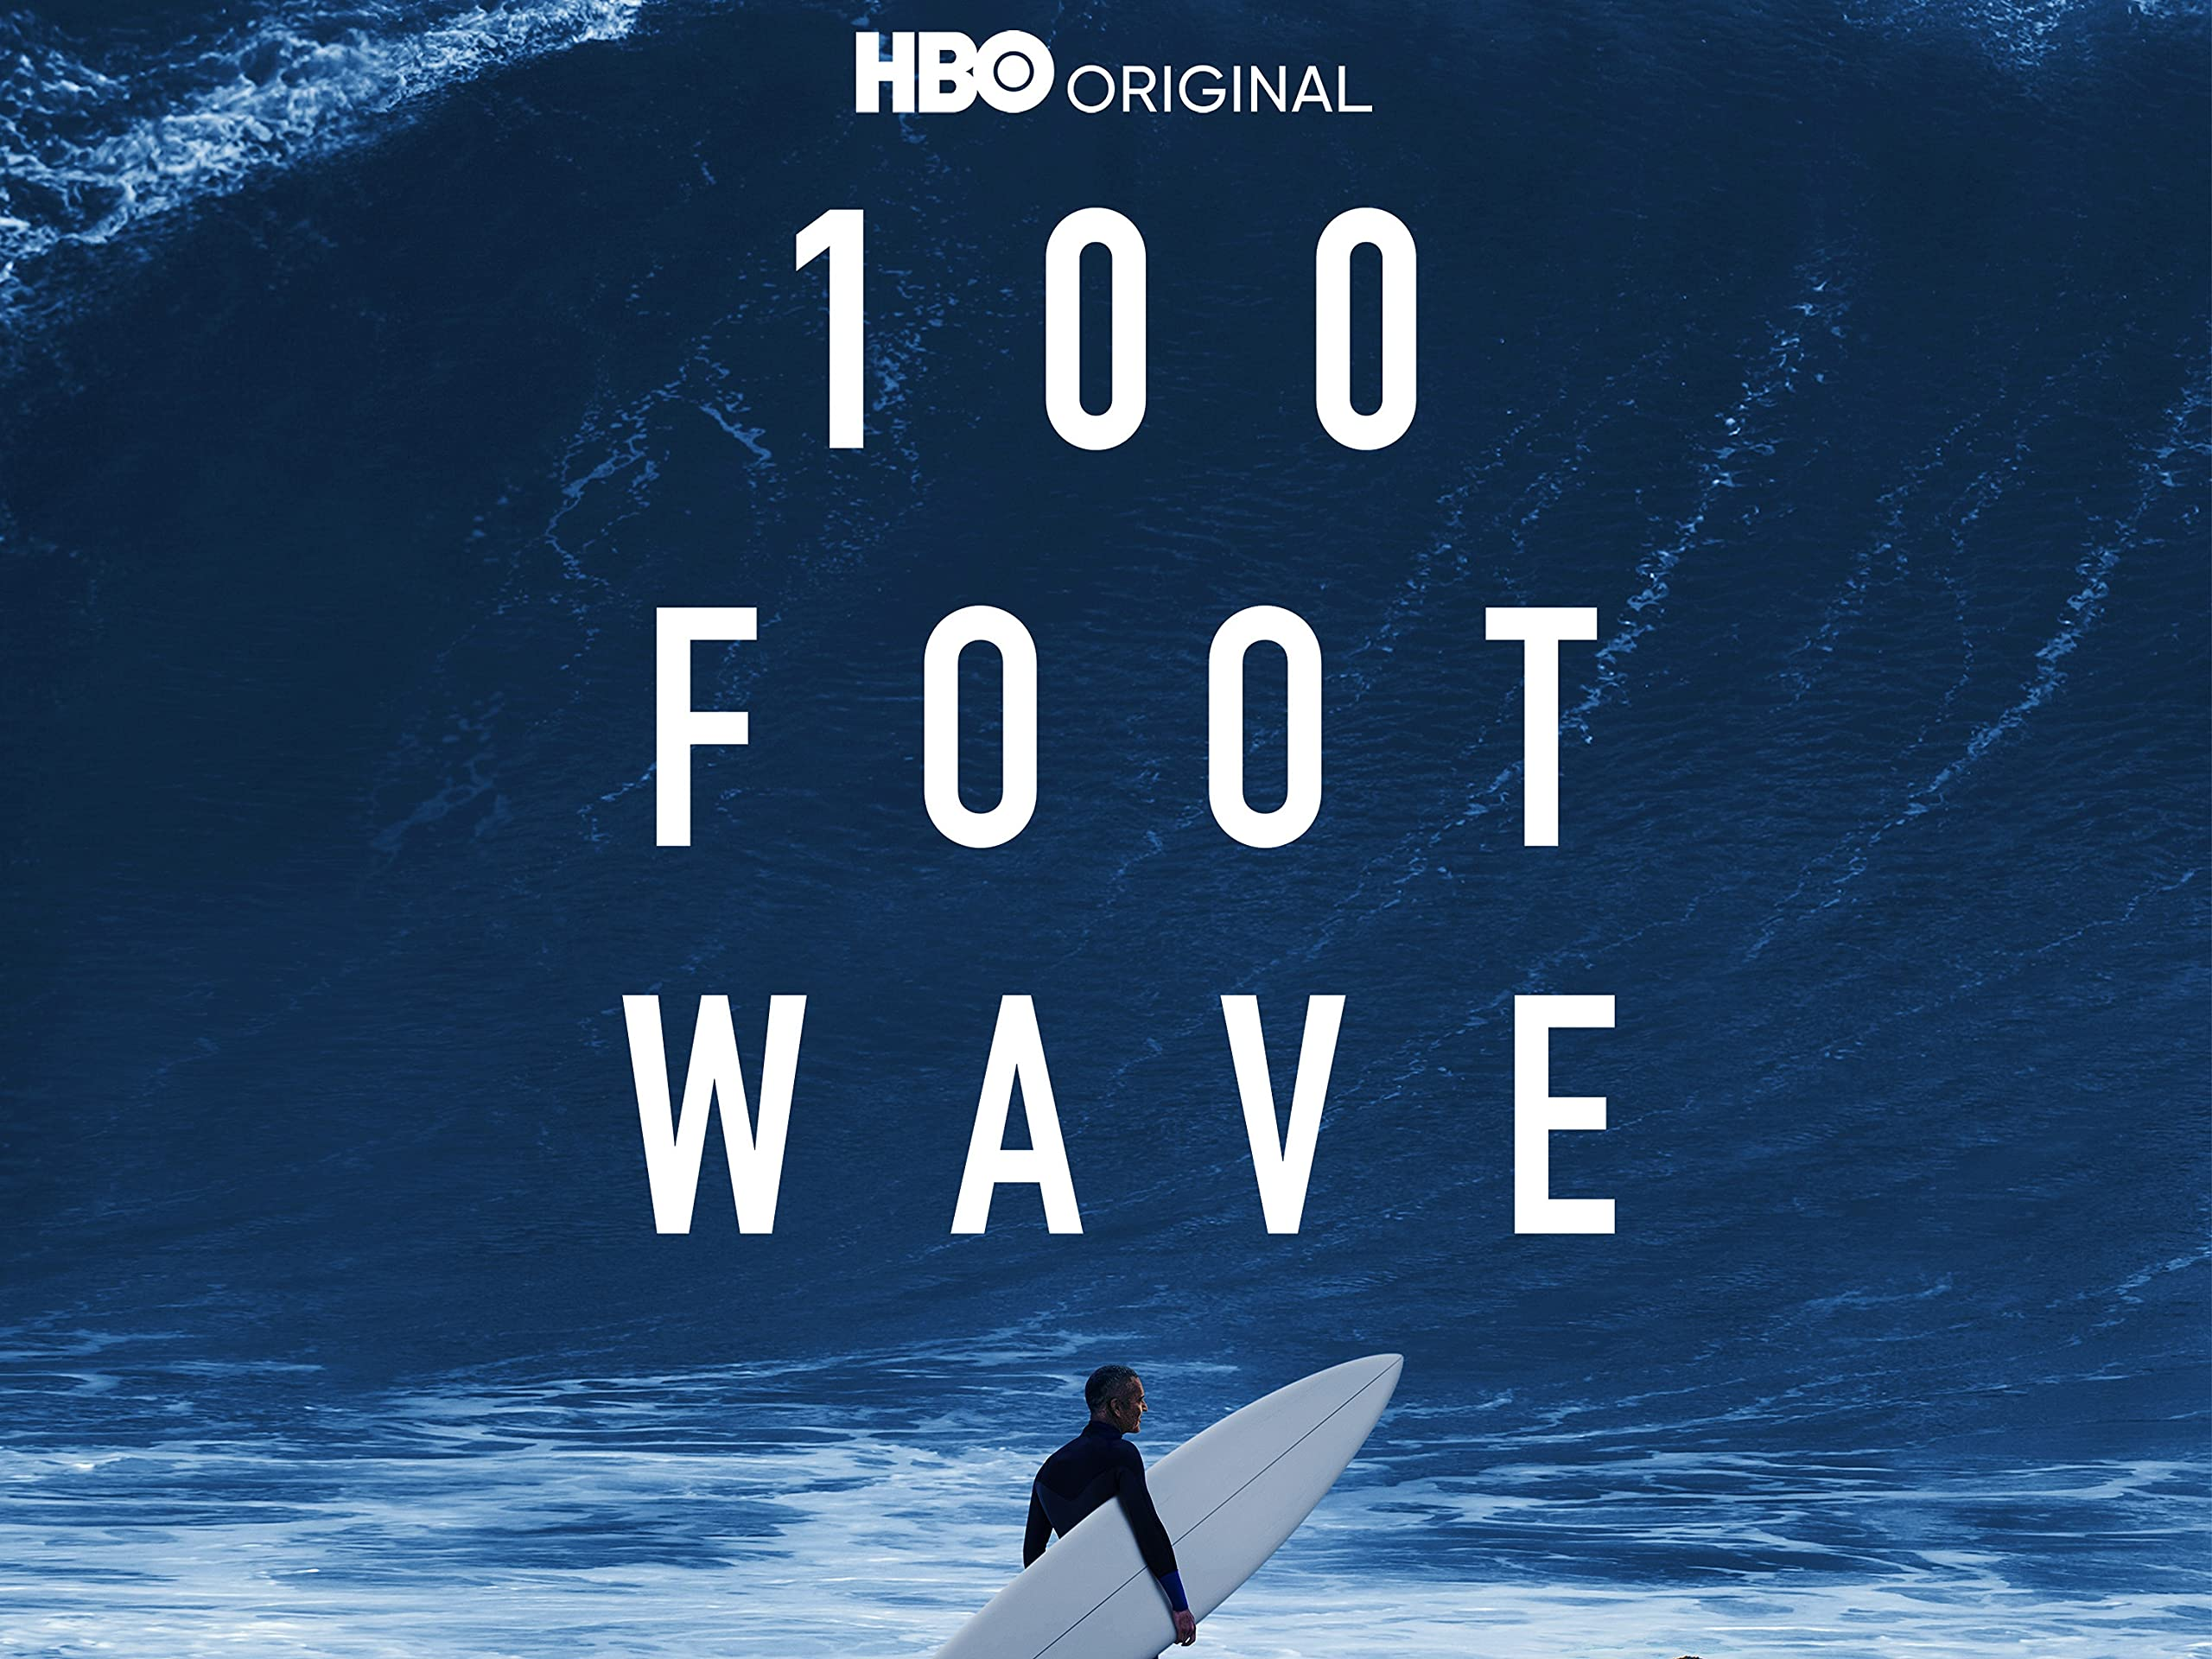 """'100 Foot Wave' Episode 2 """"Chapter II - We're Not Surfers"""" Watch Online For Free : HBO Max"""